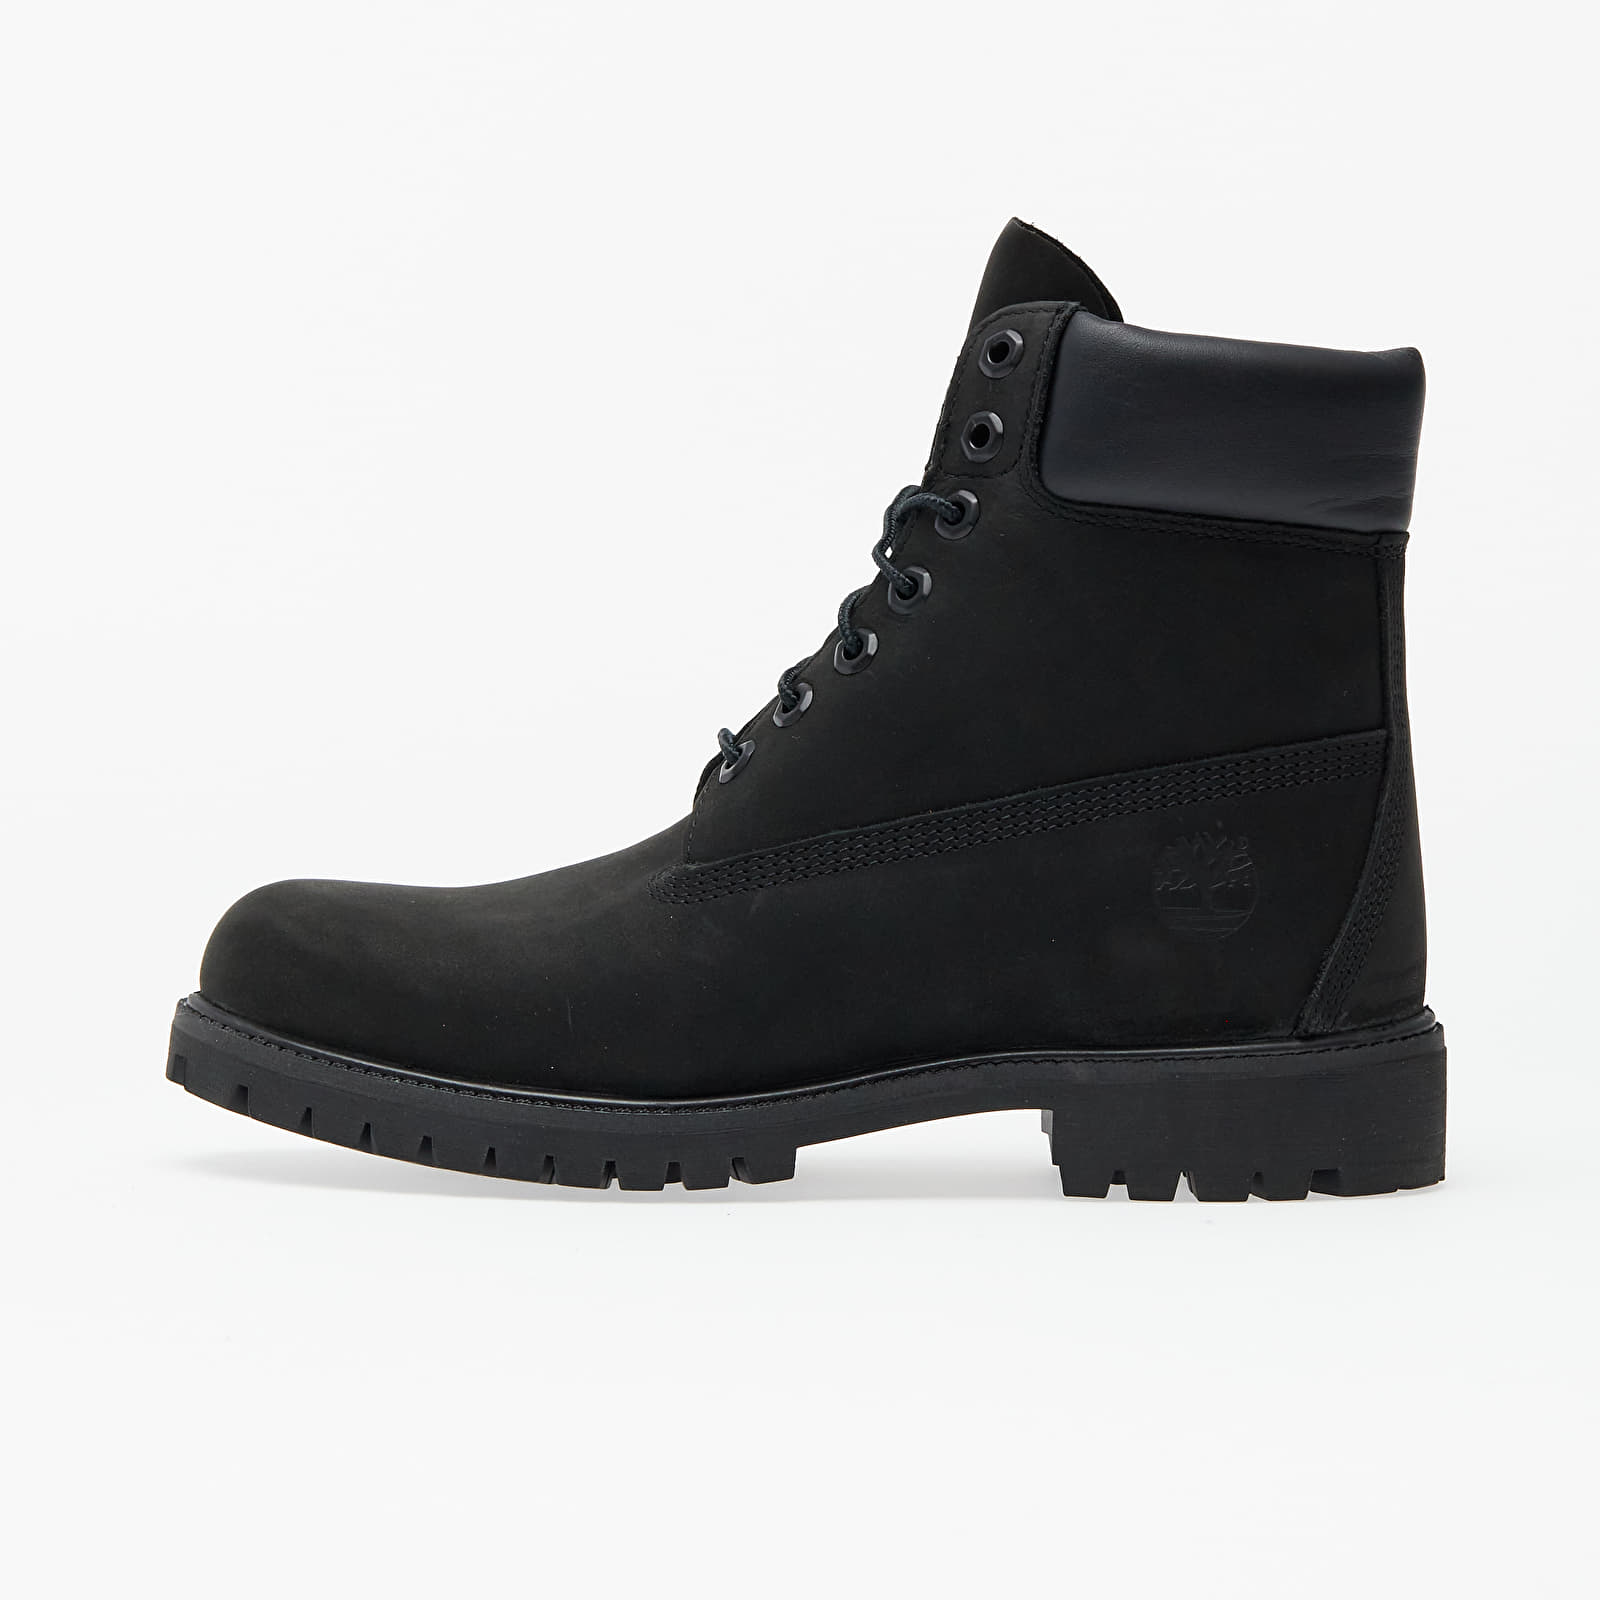 Zapatillas Hombre Timberland Men's/Hommes 6 Inch Premium Boot Black